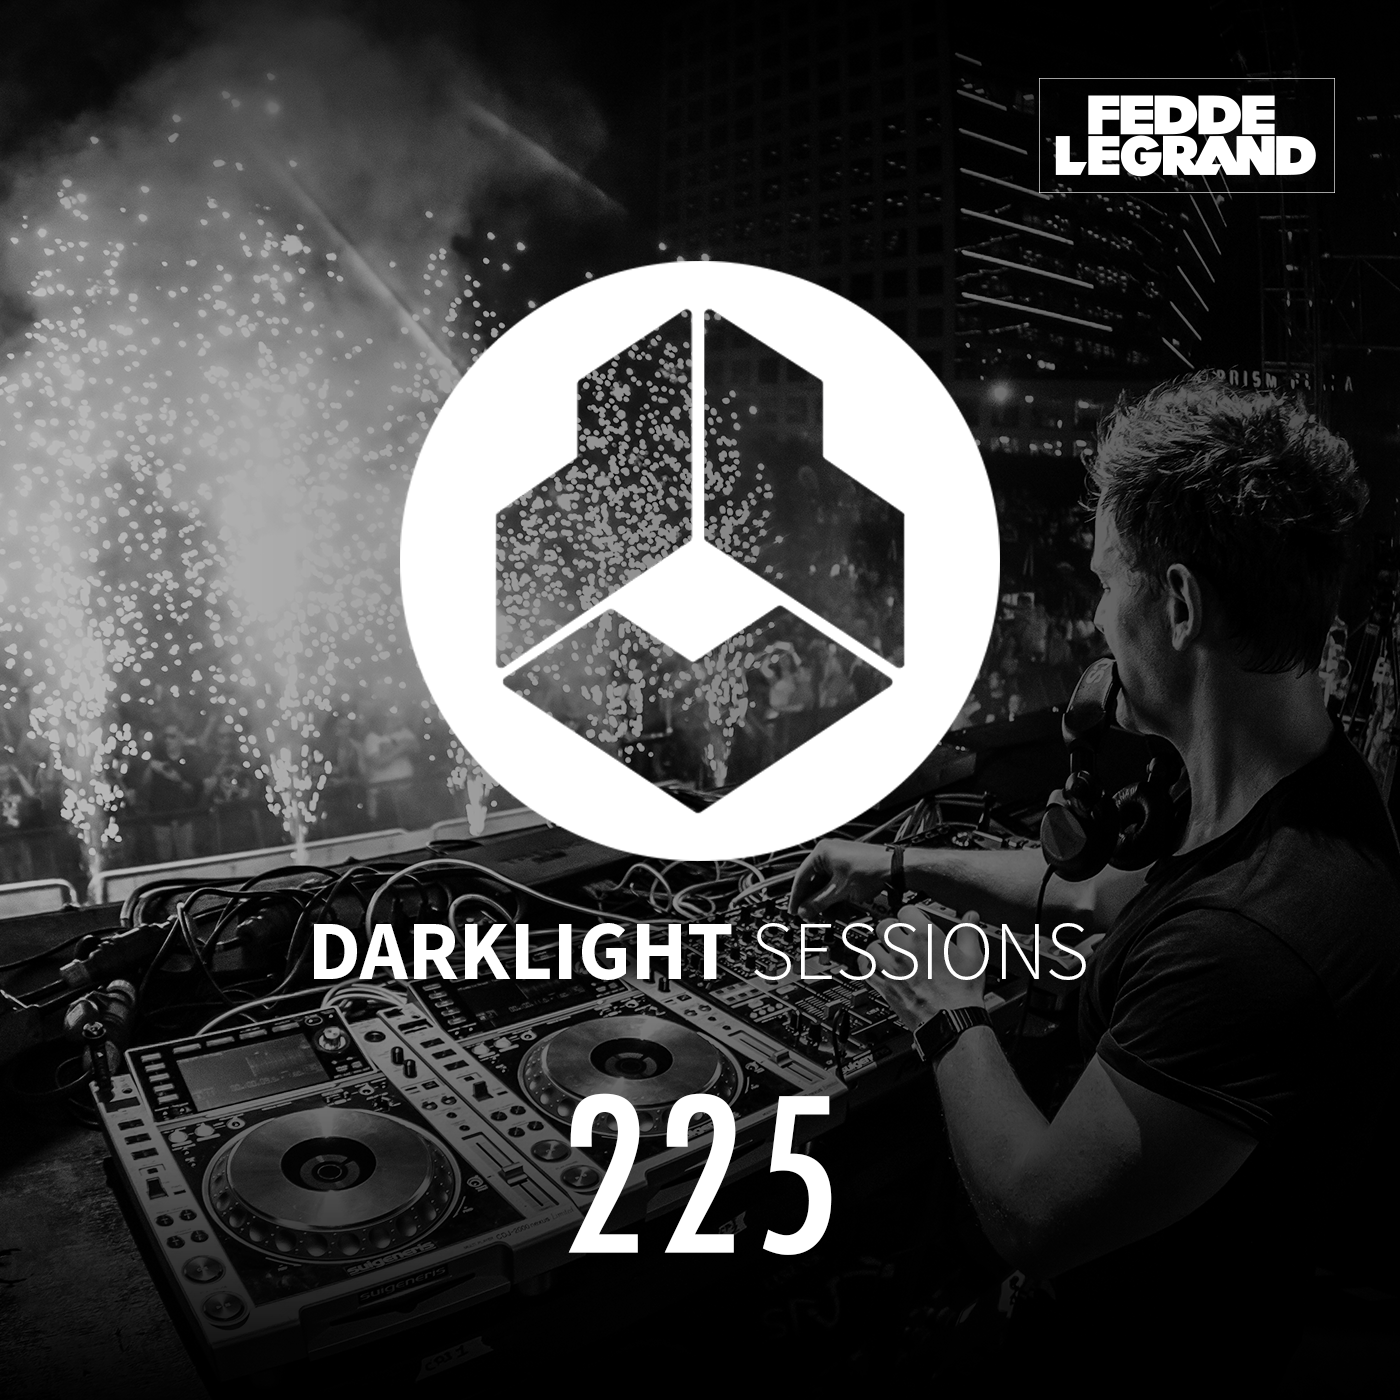 Darklight Sessions 225